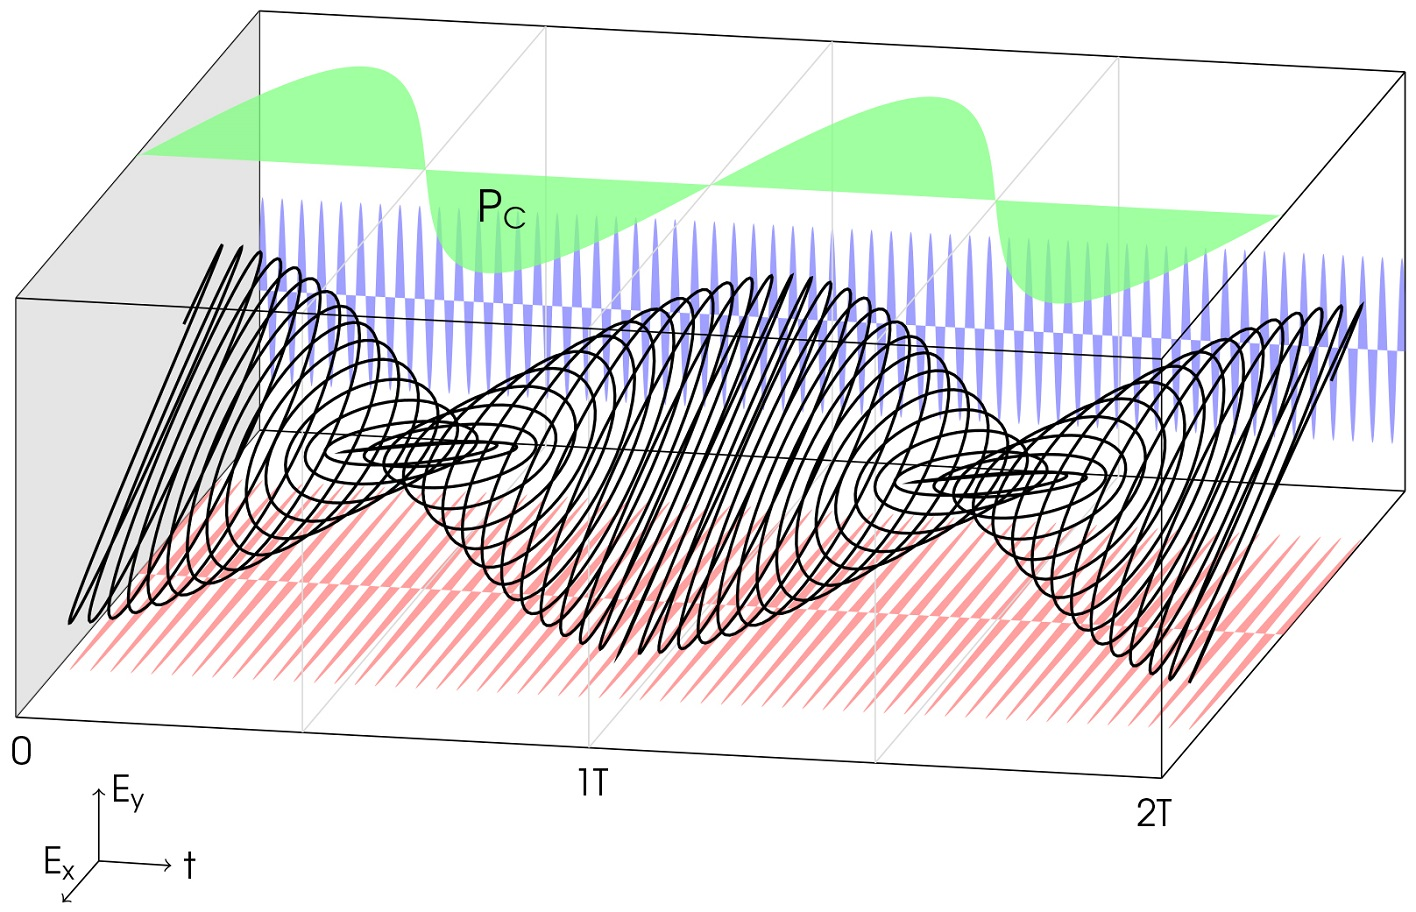 The polarisation describes a light wave's oscillation direction